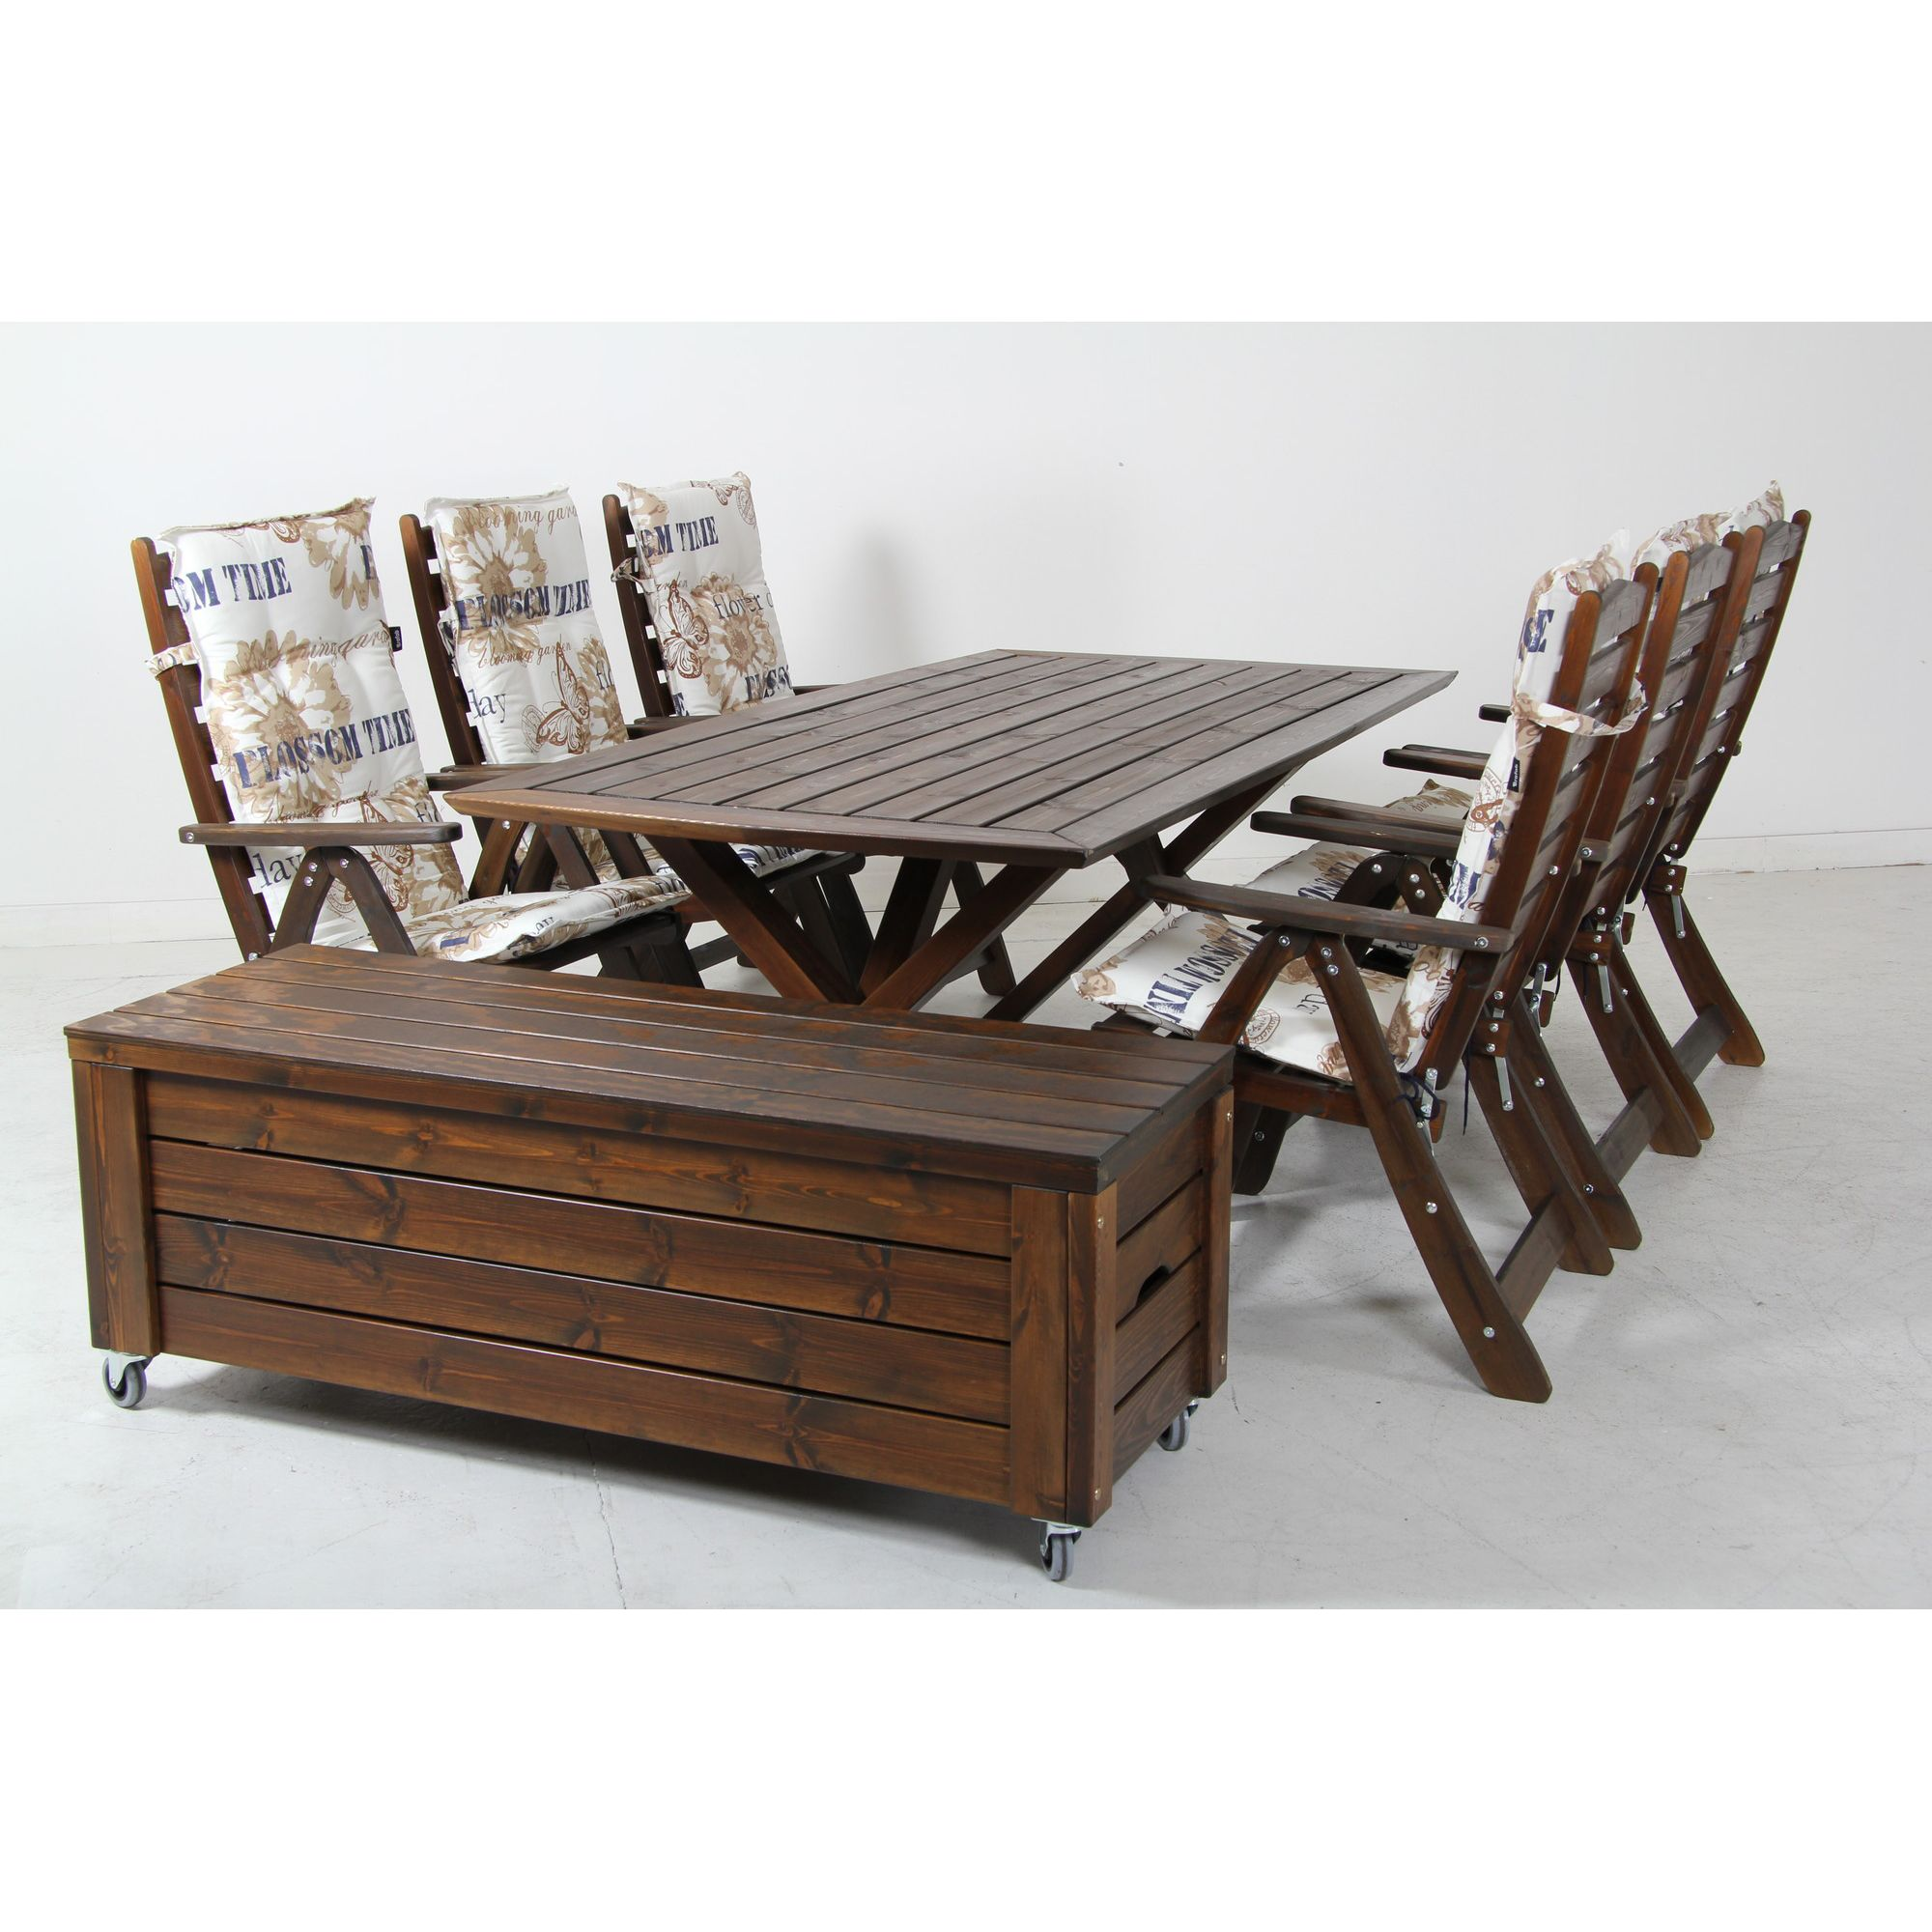 Eden Wood Borgholm 8 Piece Dining Collection